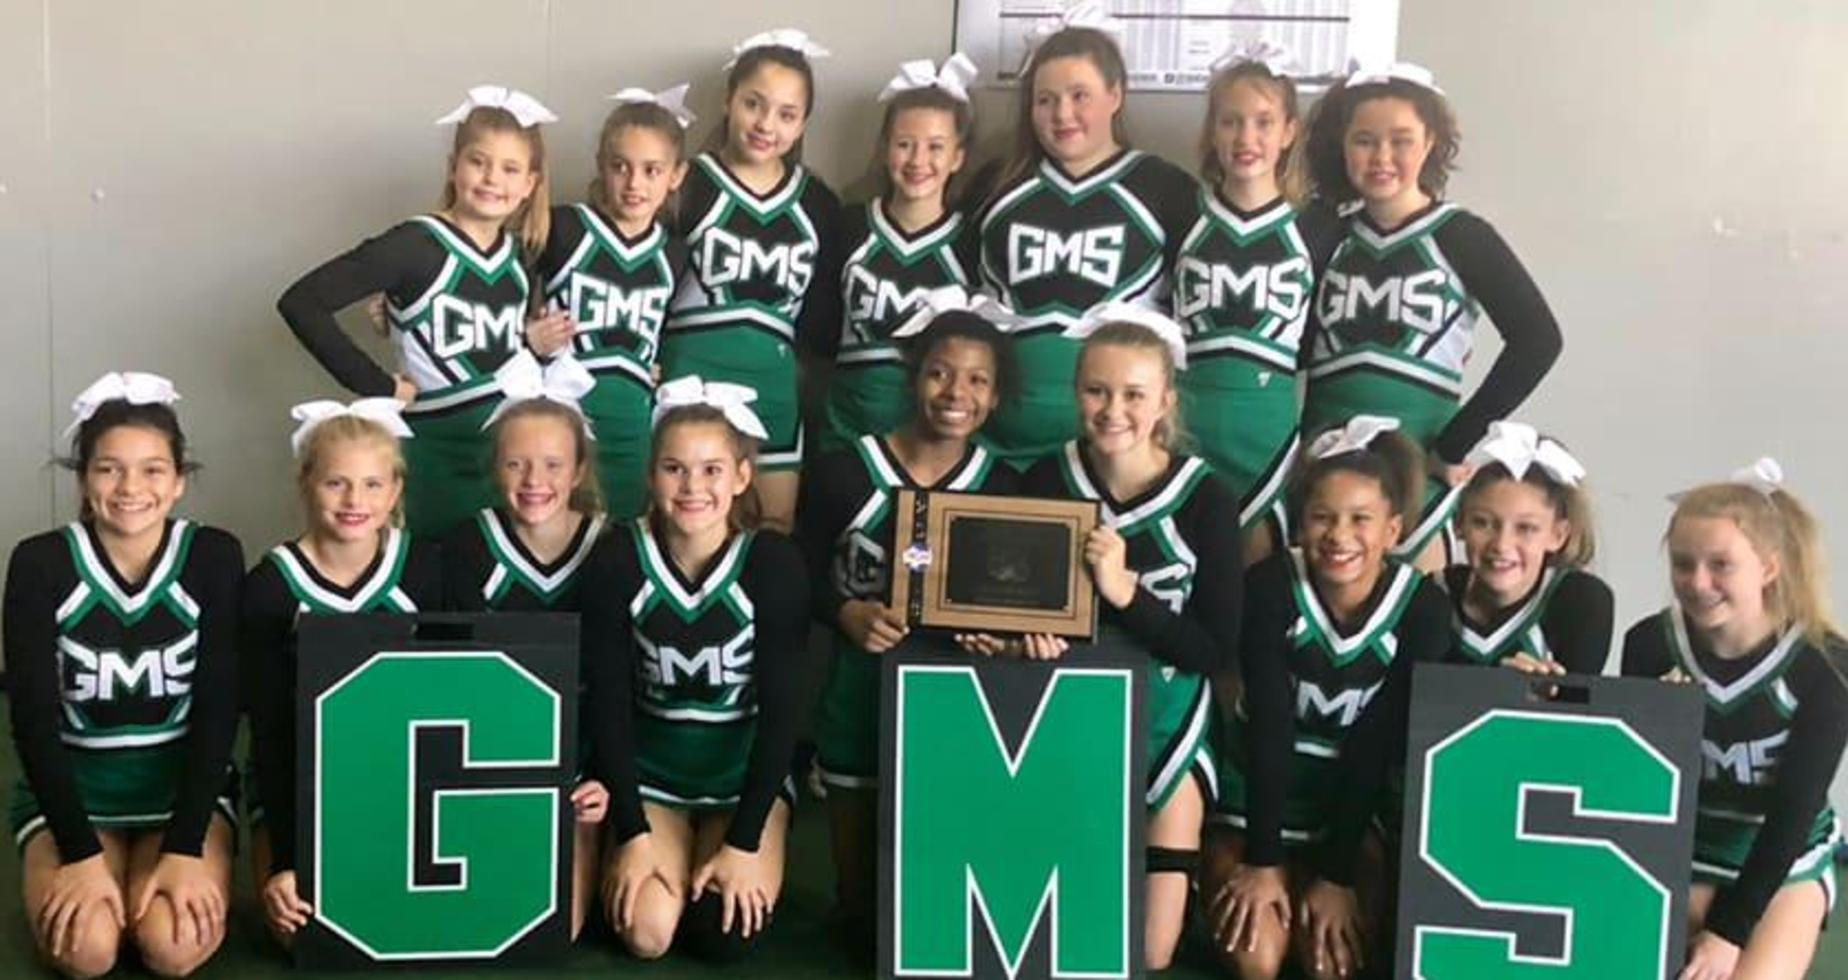 A picture of the GMS cheer team